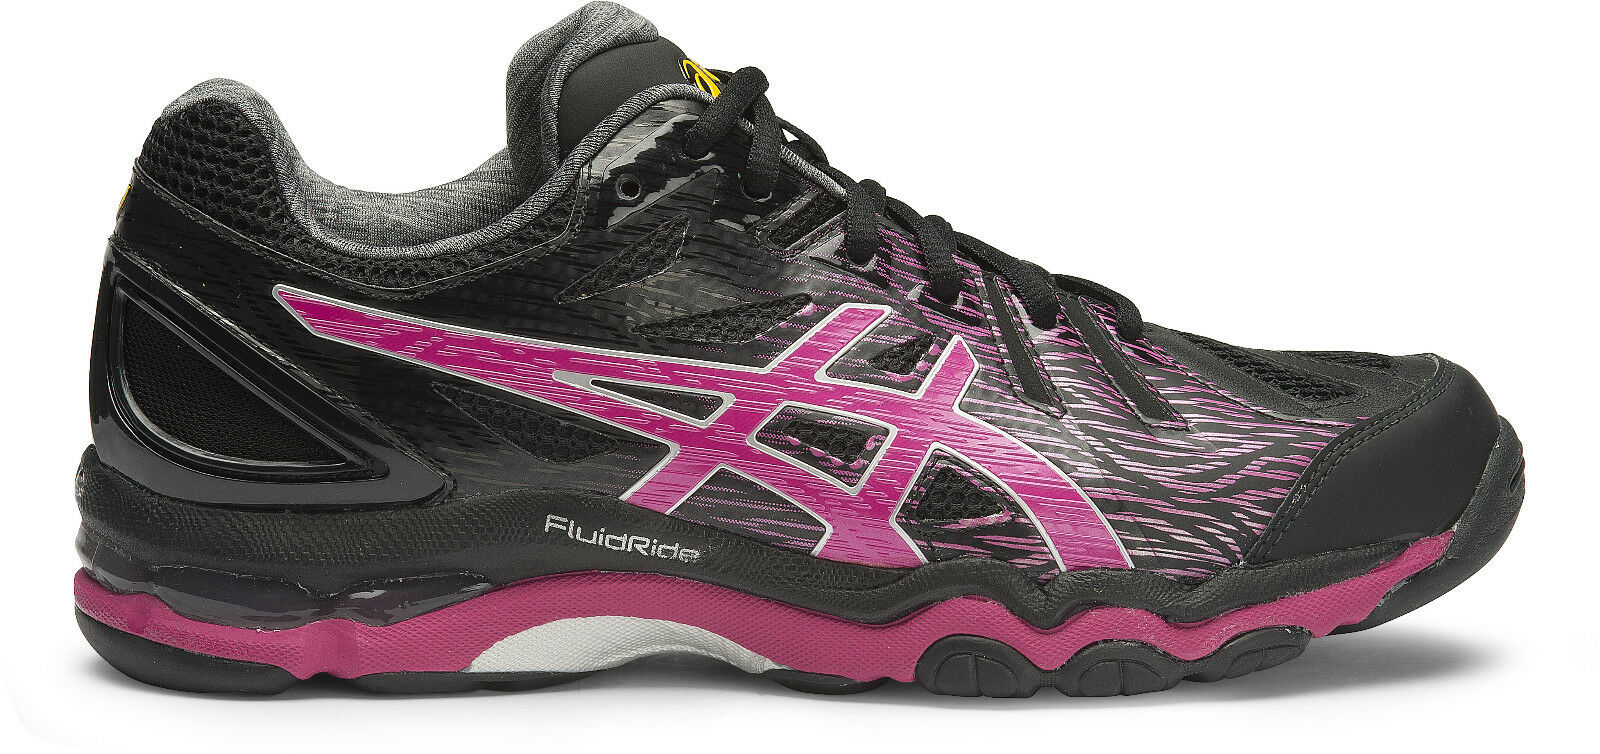 * NEW * Asics Gel Netburner Super 6 Womens Netball Shoe Price reduction Price reduction The latest discount shoes for men and women